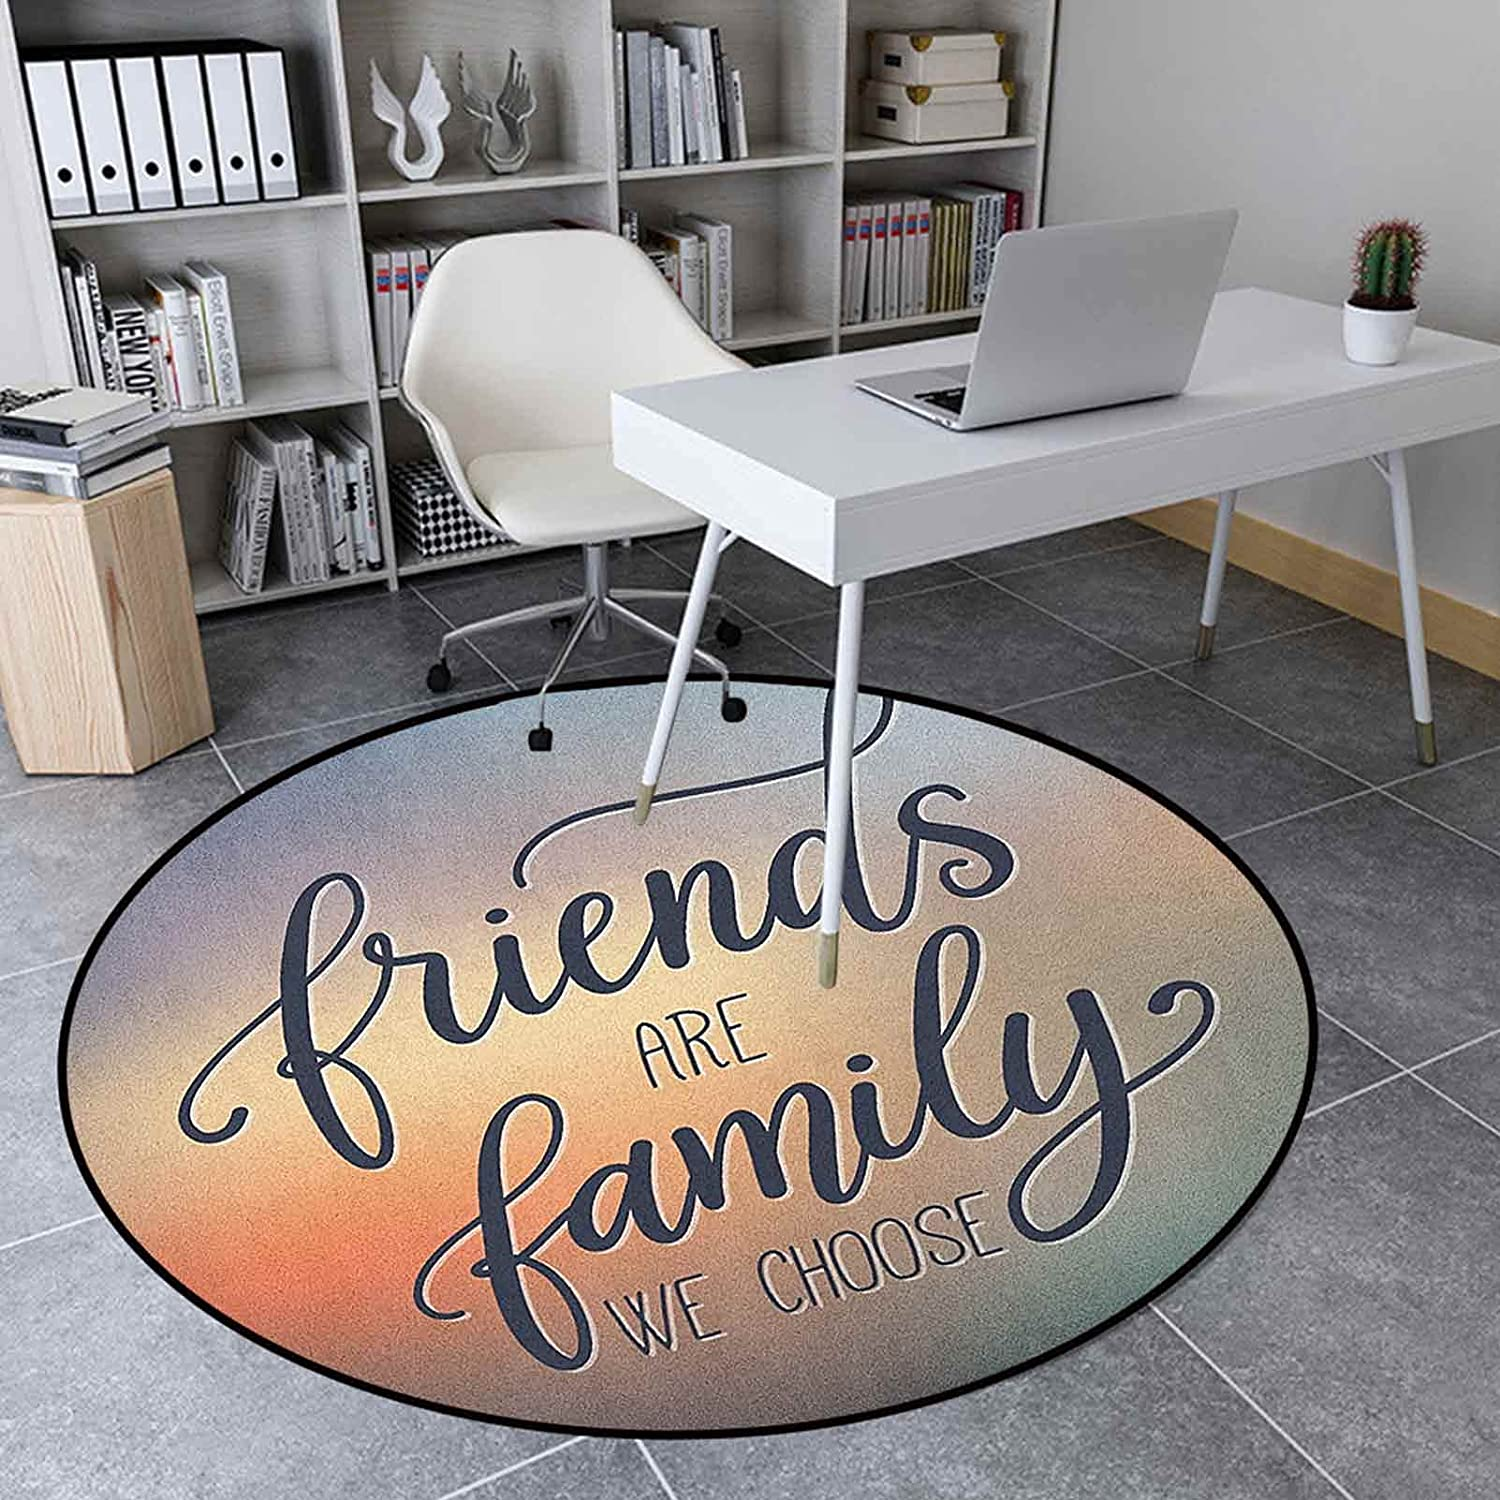 Family Round Rugs 3.9 Ft Anti-Slip Inches Home Decoratio Carpet Limited Special Price Outlet SALE